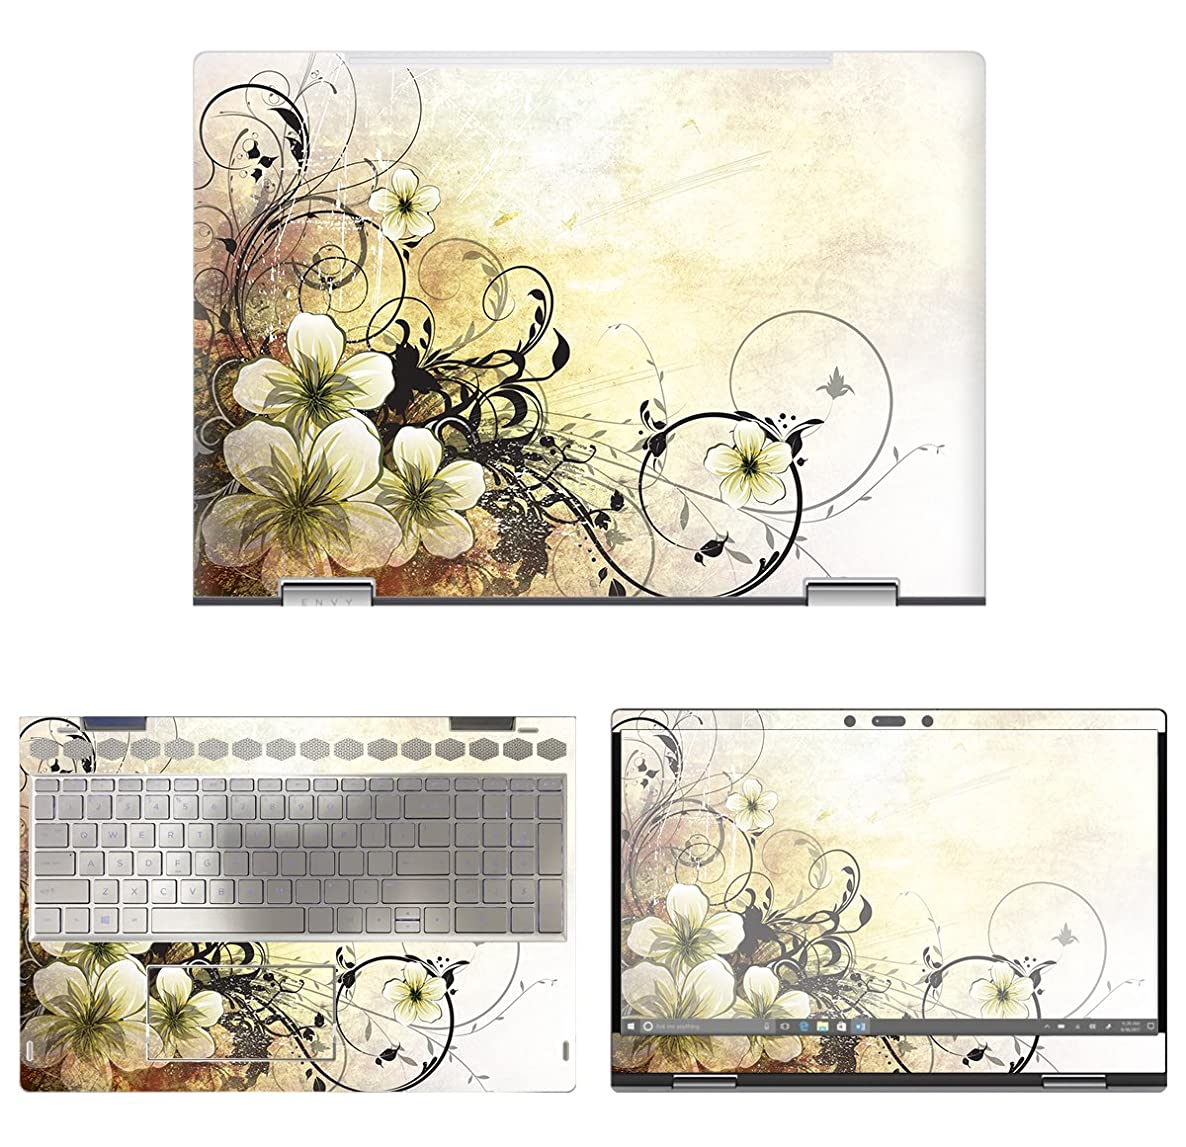 decalrus - Protective Decal Skin Sticker for HP Envy X360 15M-BP011DX (15.6